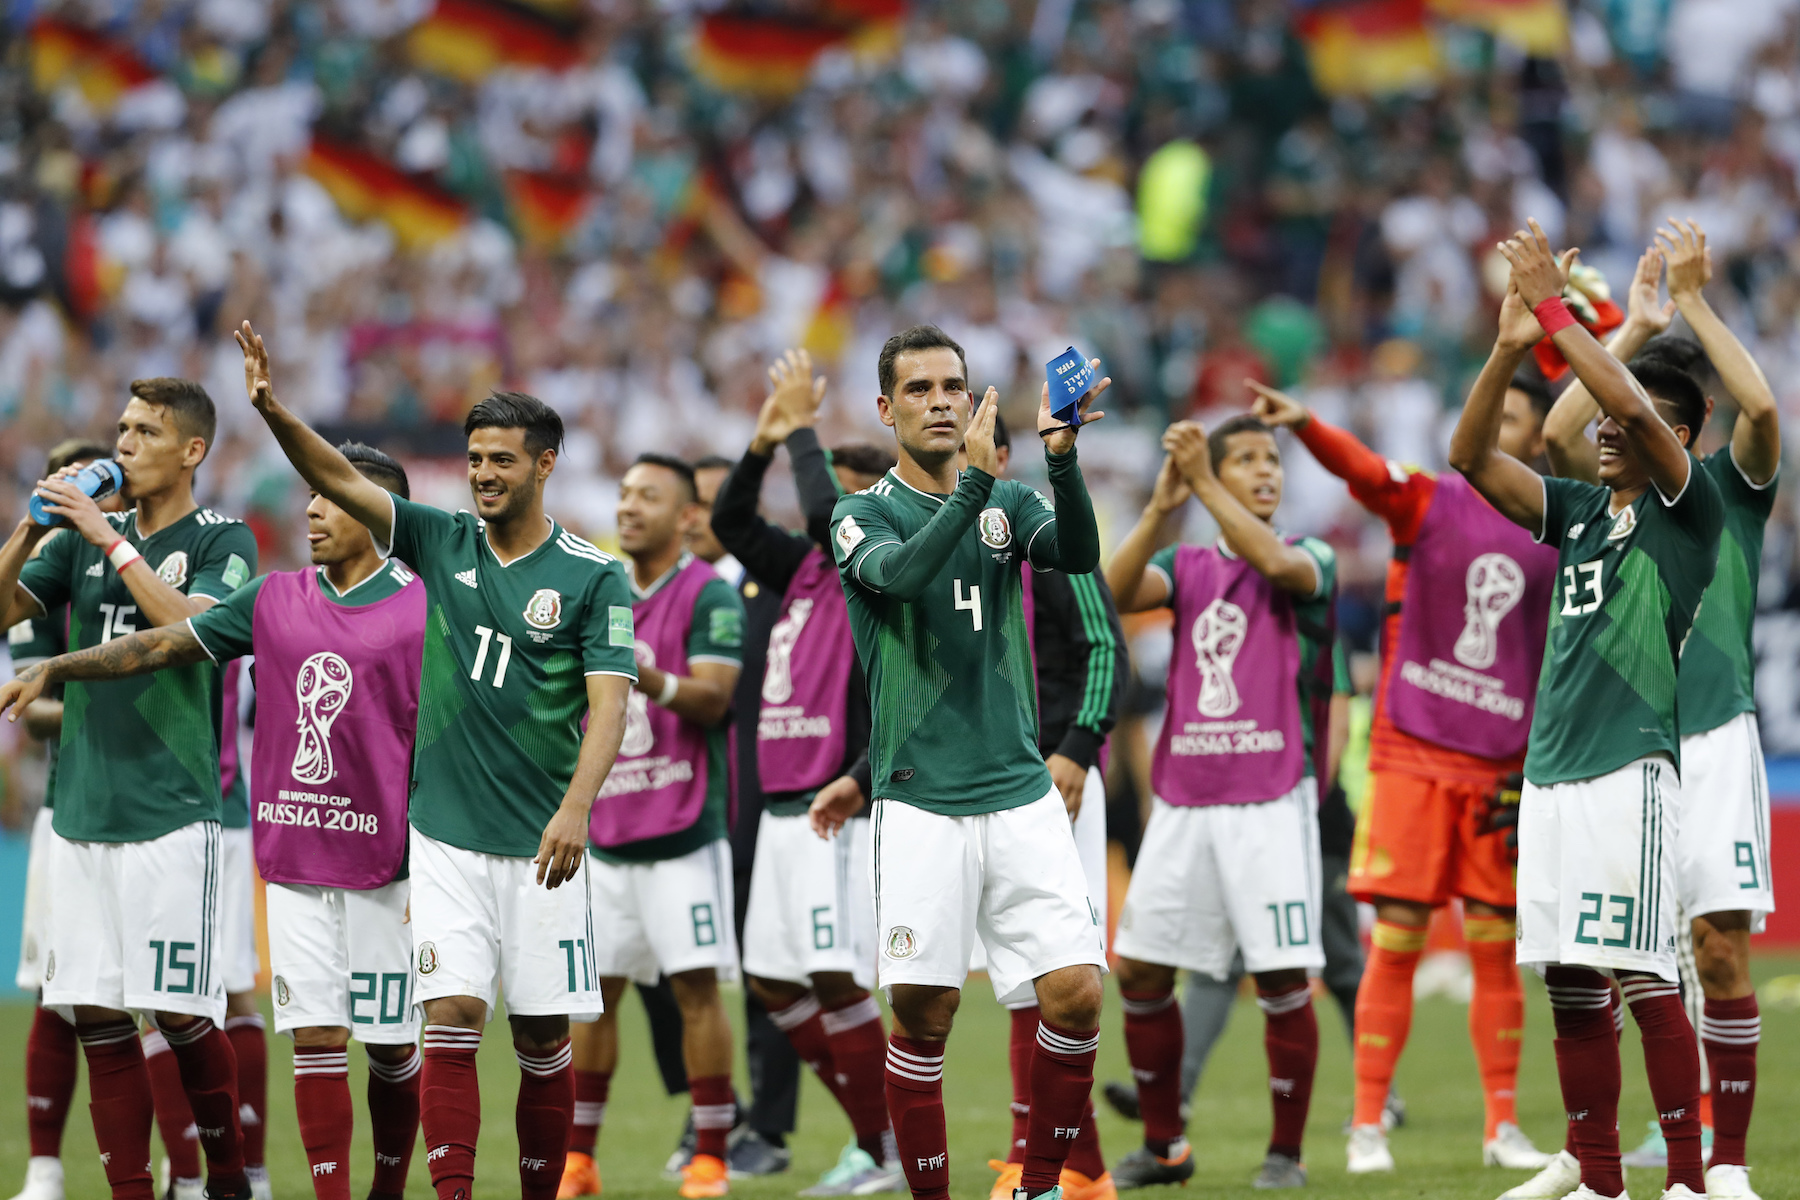 "<div class=""meta image-caption""><div class=""origin-logo origin-image ap""><span>AP</span></div><span class=""caption-text"">Mexico's Rafael Marquez, center and his teammates celebrate after winning the group F match between Germany and Mexico at the 2018 soccer World Cup. (AP Photo/Antonio Calanni)</span></div>"